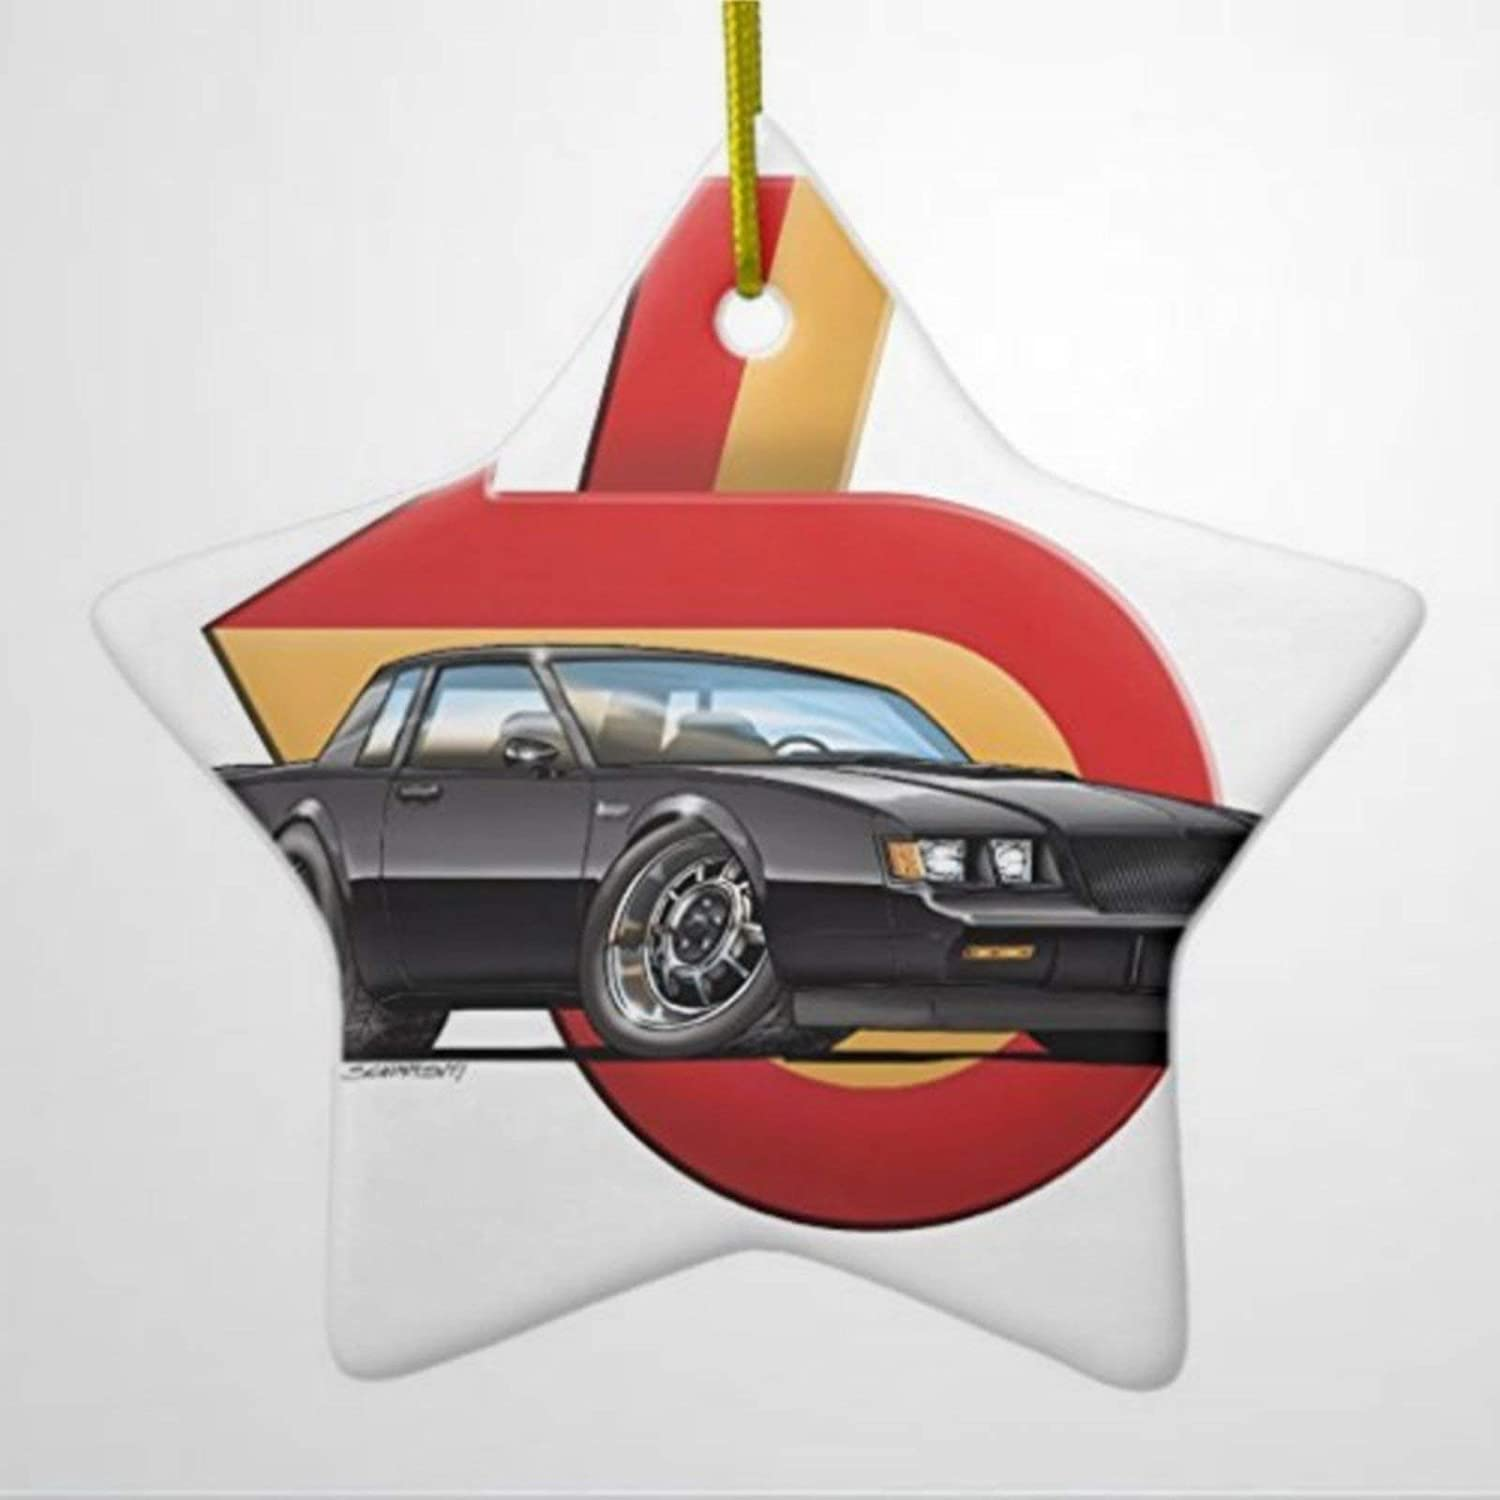 BYRON HOYLE Ornaments for Christmas Tree Buick Grand National Star Decorative Ornament Hanging Christmas Ornaments Pandemic Xmas Decor Wedding Ornament Holiday Present